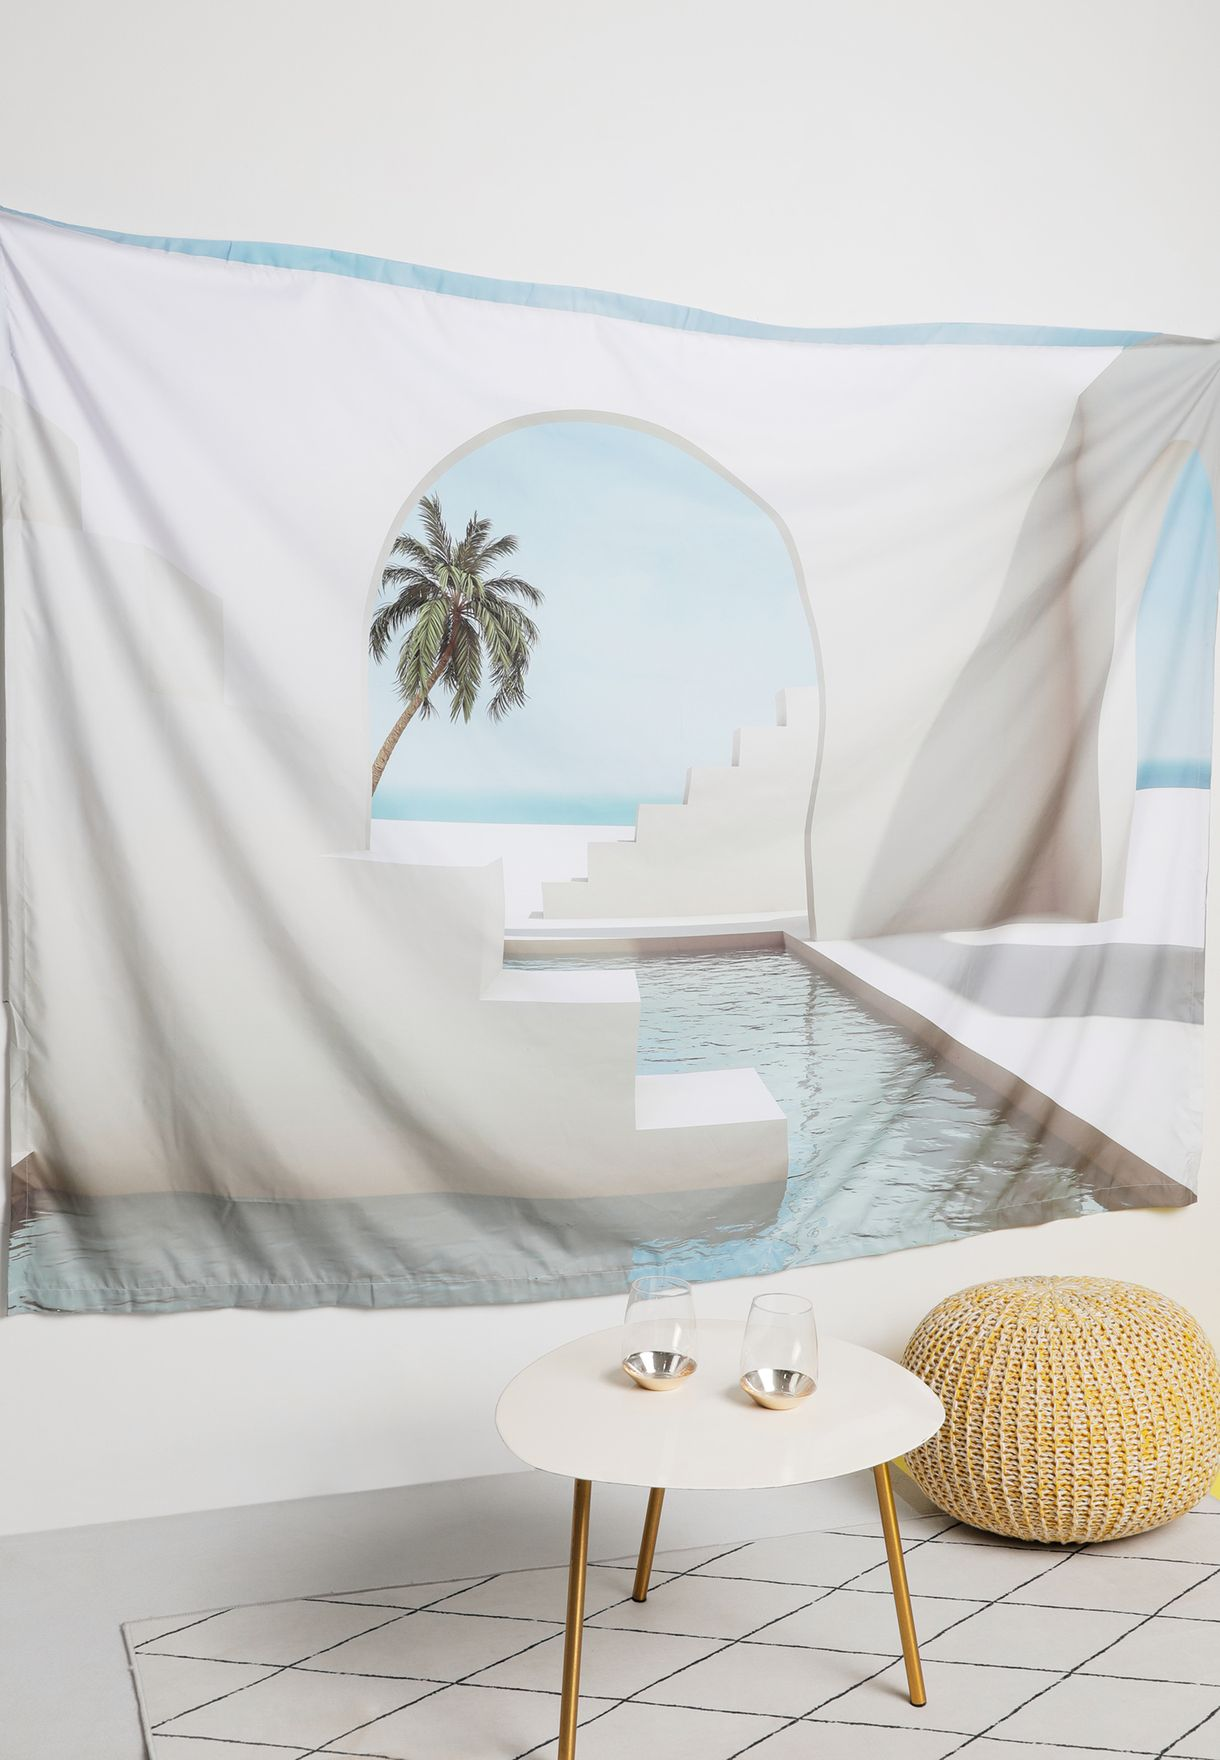 Pool & Arches Wall Back Drop Wall Art